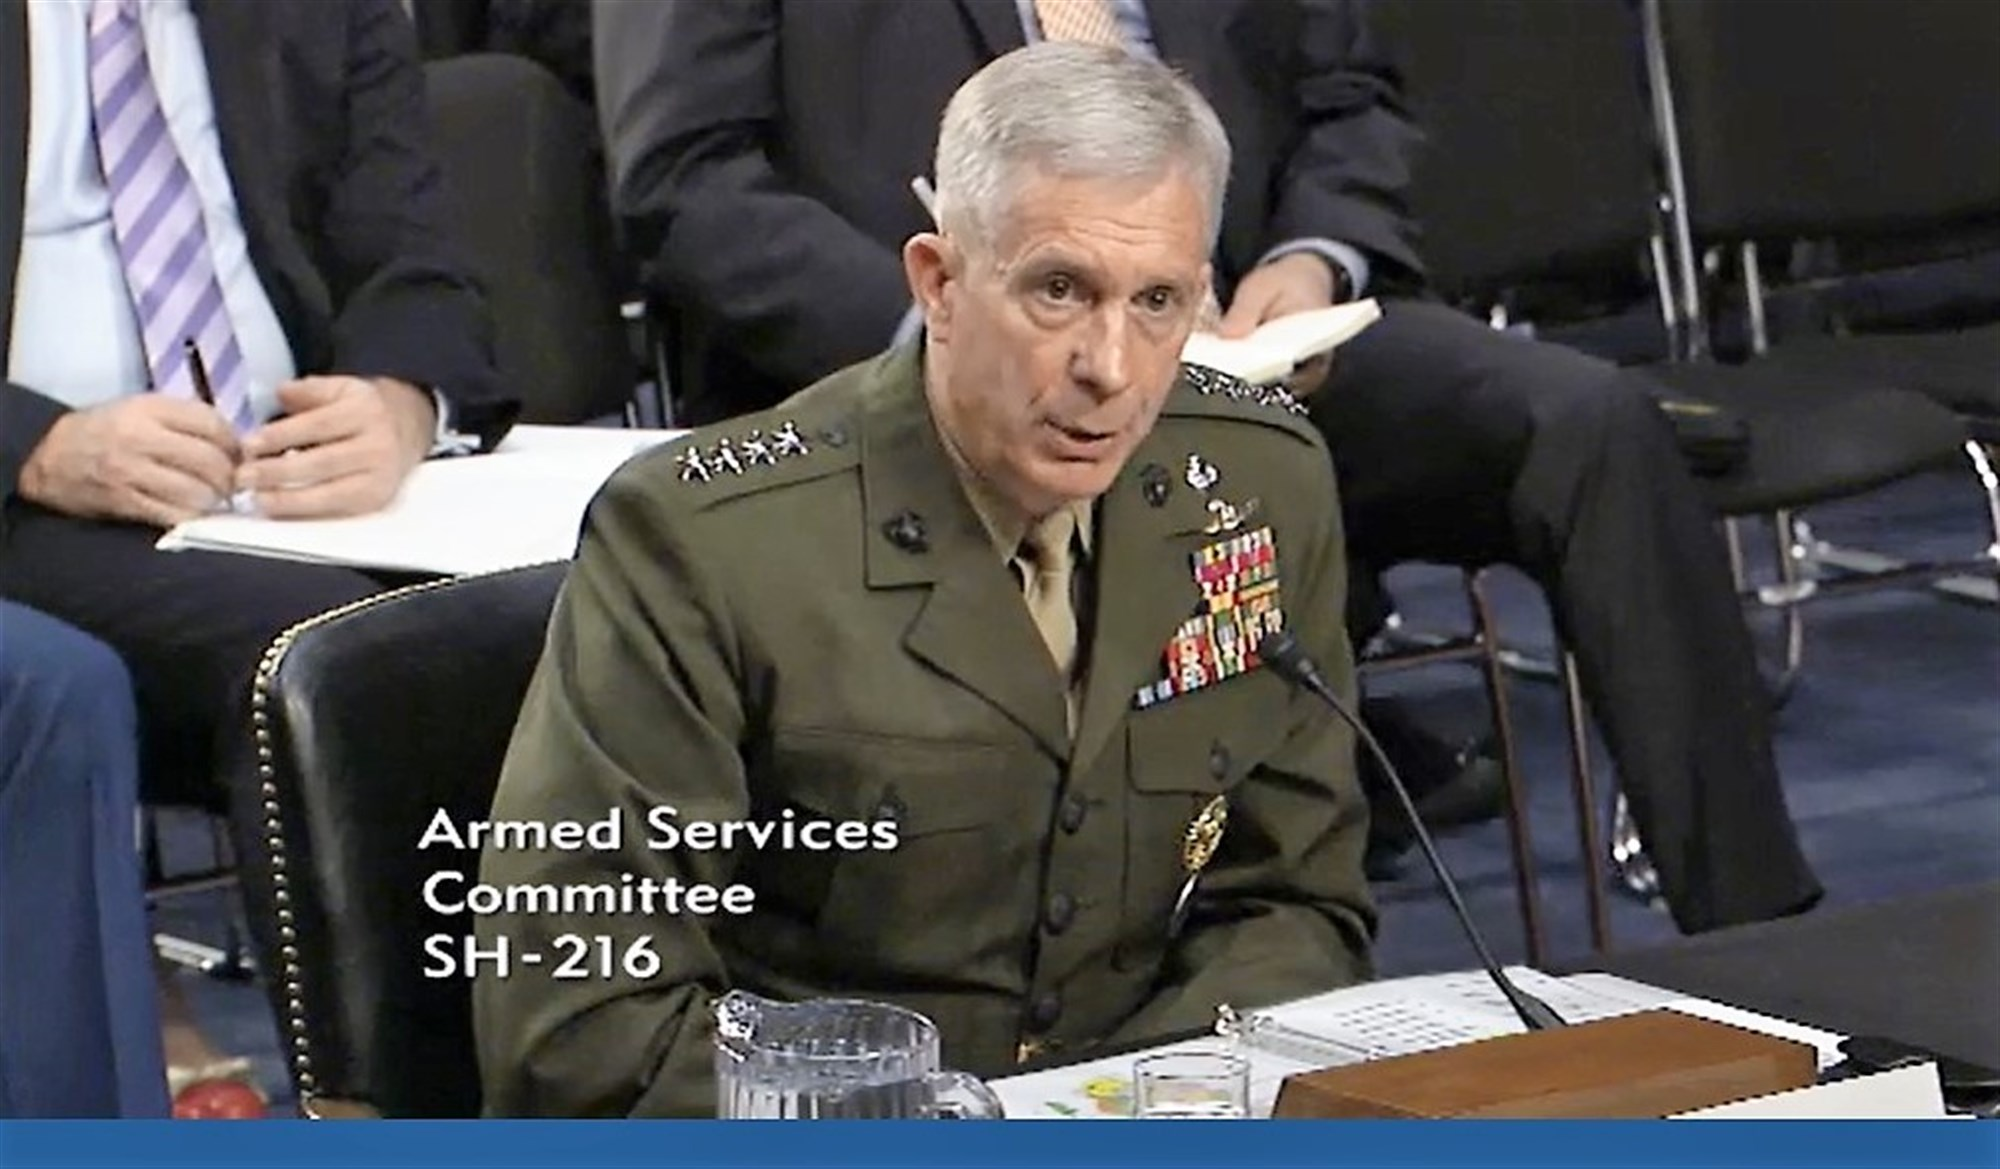 Commander U.S. Africa Command General Thomas Waldhauser provides information to members of the U.S. Senate Committee on Armed Services (SASC) during a hearing held on March 9, 2017 in Washington DC.  Waldhauser appeared before the committee for an annual session that allows members the opportunity receive updates from commanders and ask questions that inform decisions. During the hearing, Waldhauser submitted U.S. AFRICOM's official annual posture statement and answered questions related to the command's area of responsibility on topics ranging from counter-terrorism initiatives to the influence of other countries upon the African continent.  (Courtesy image)